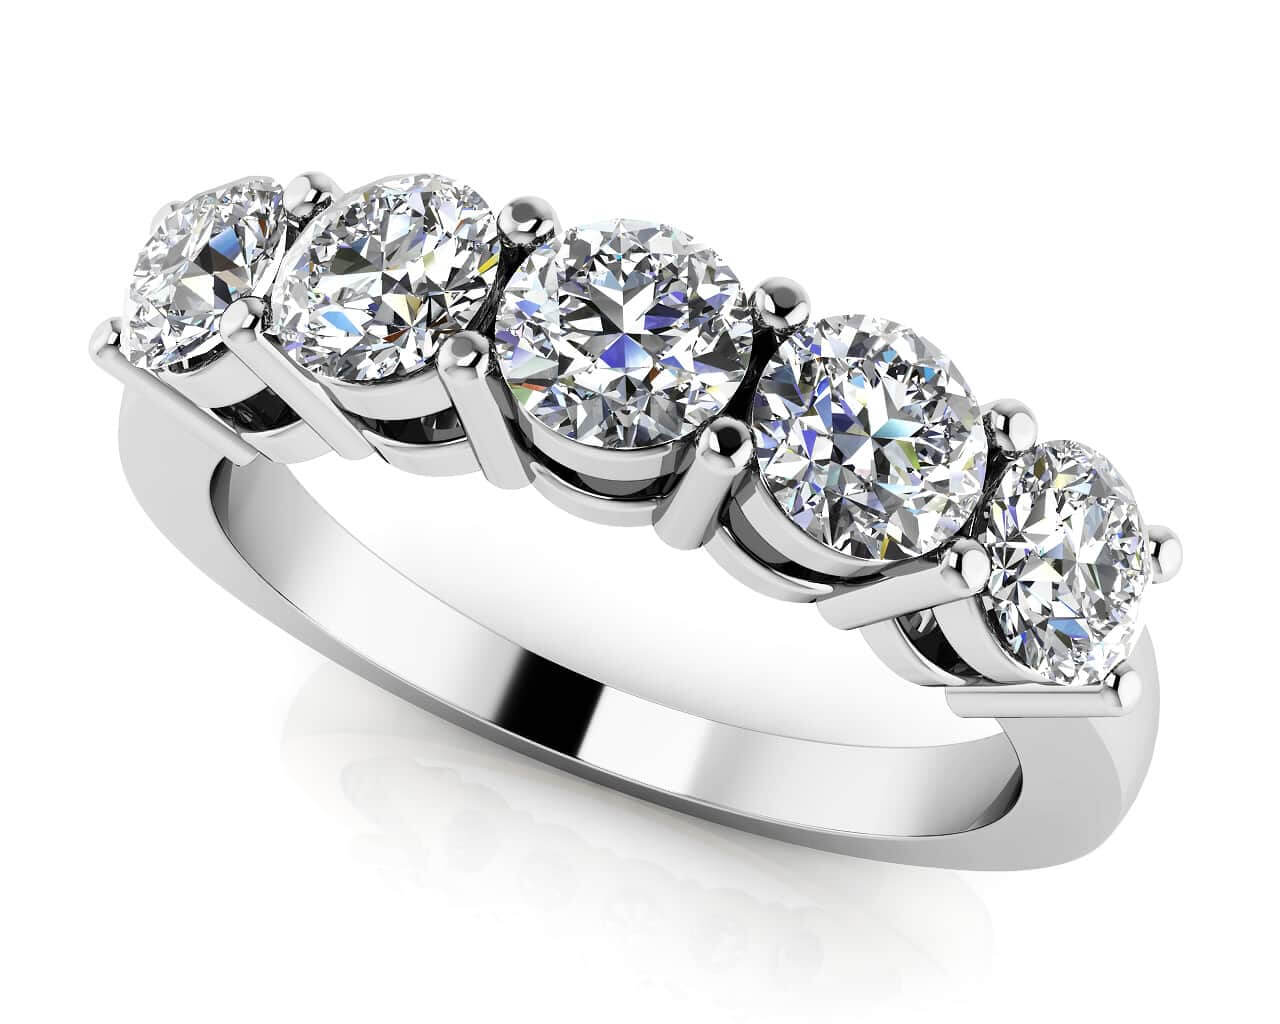 bands prong around diamond simulated eternity round with the tw electroplated band veneer ring set classic radiant sterling in platinum mm all silver diamonds